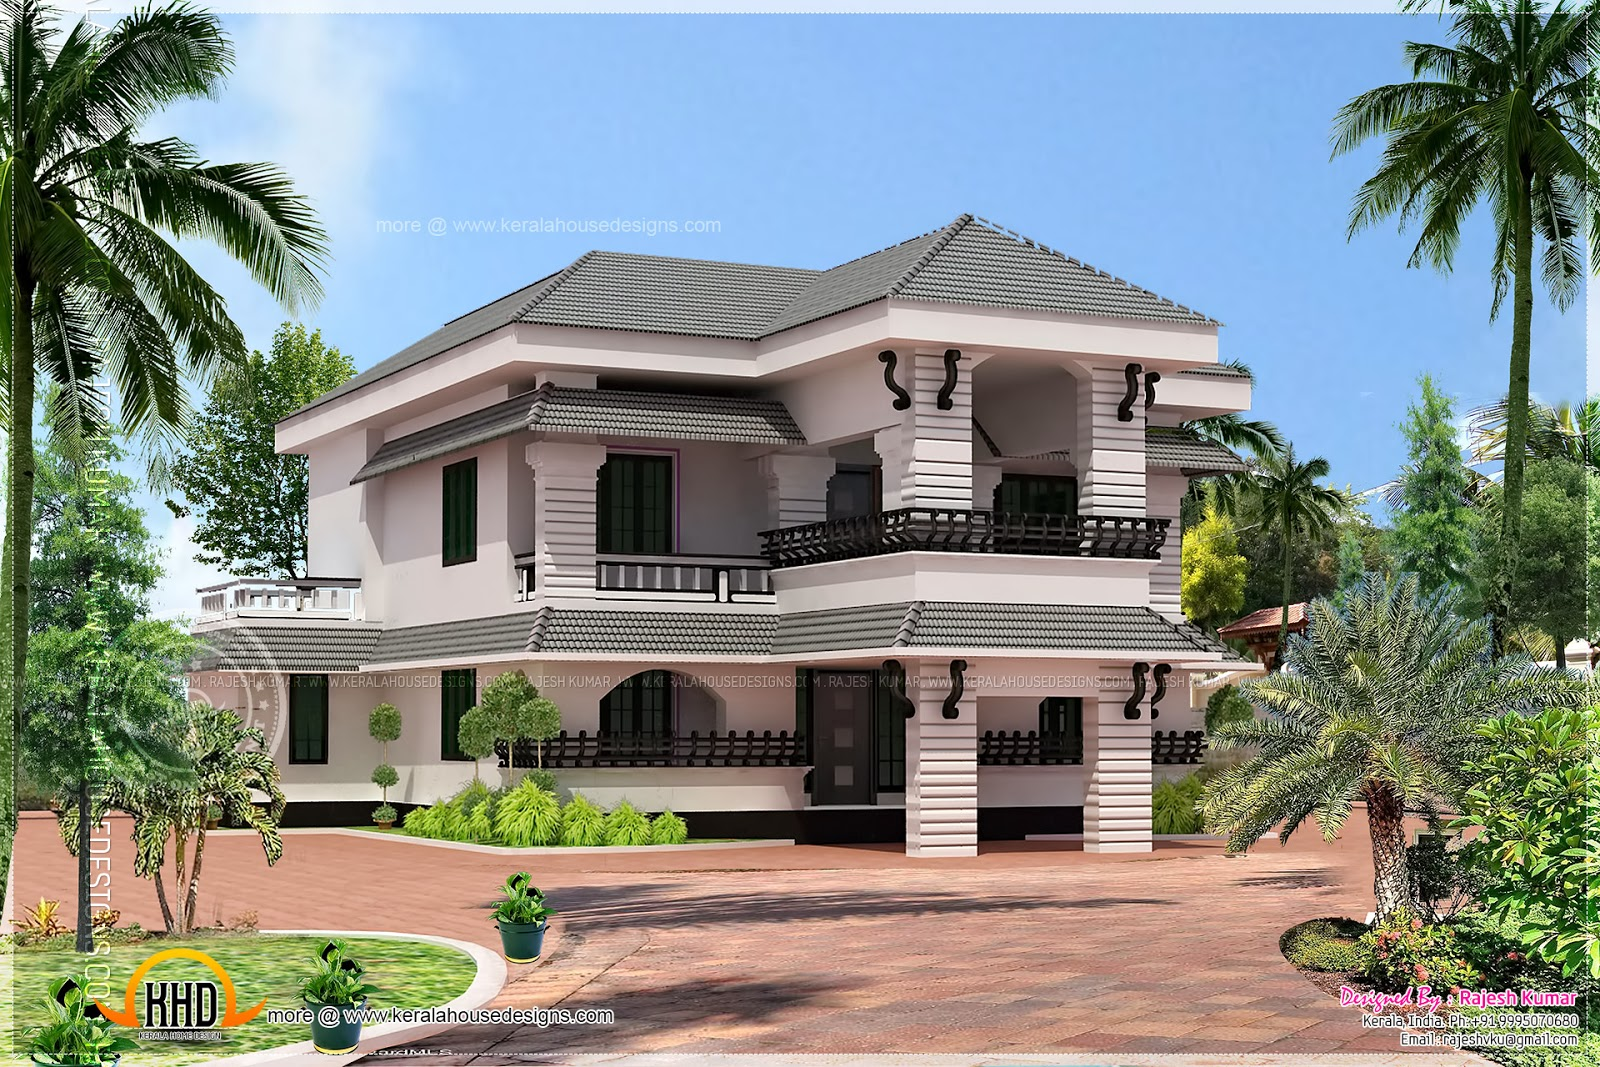 Malabar model home design kerala home design and floor plans for In house designer